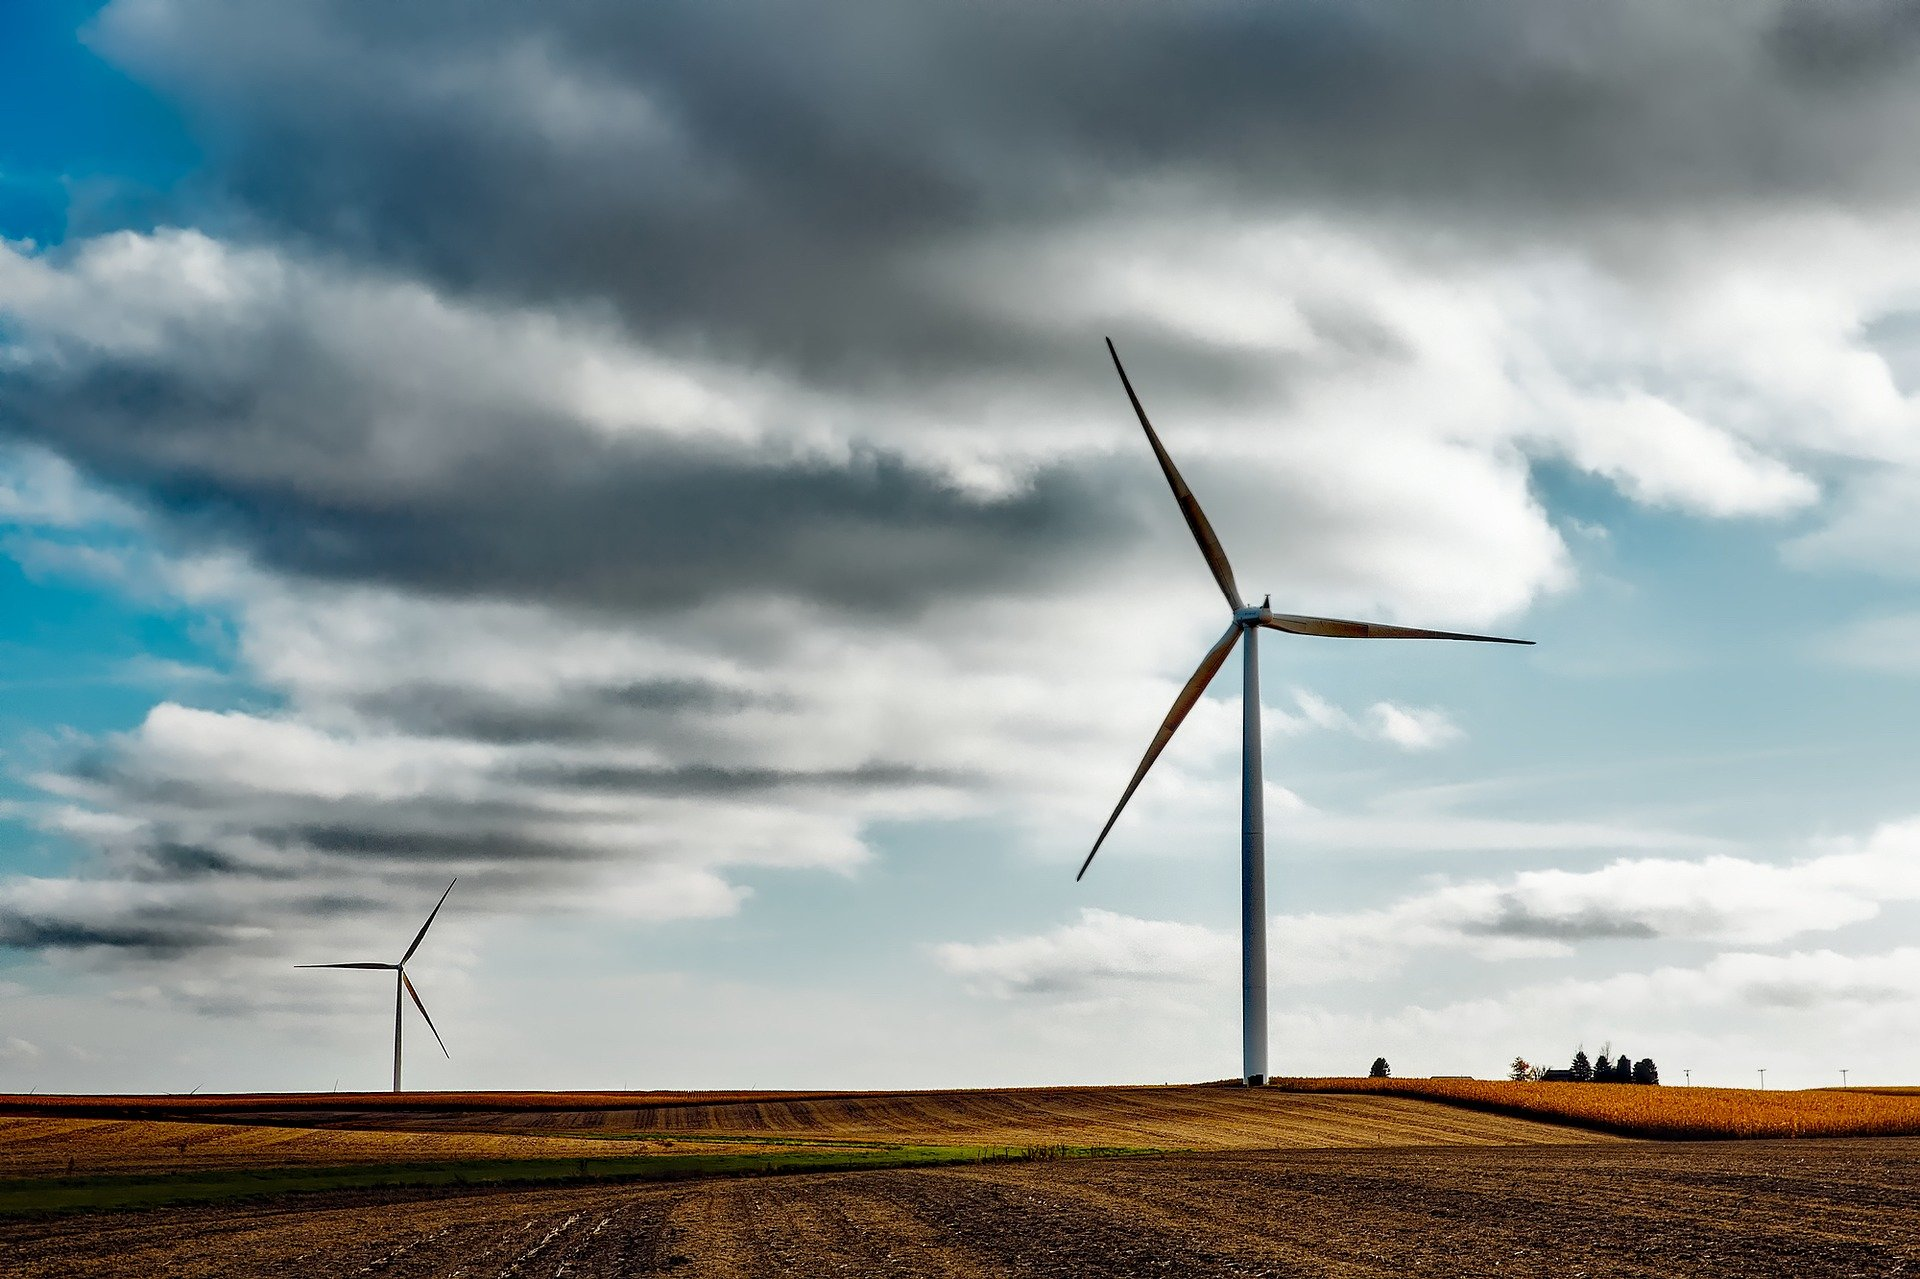 does living near wind turbines negatively impact human health